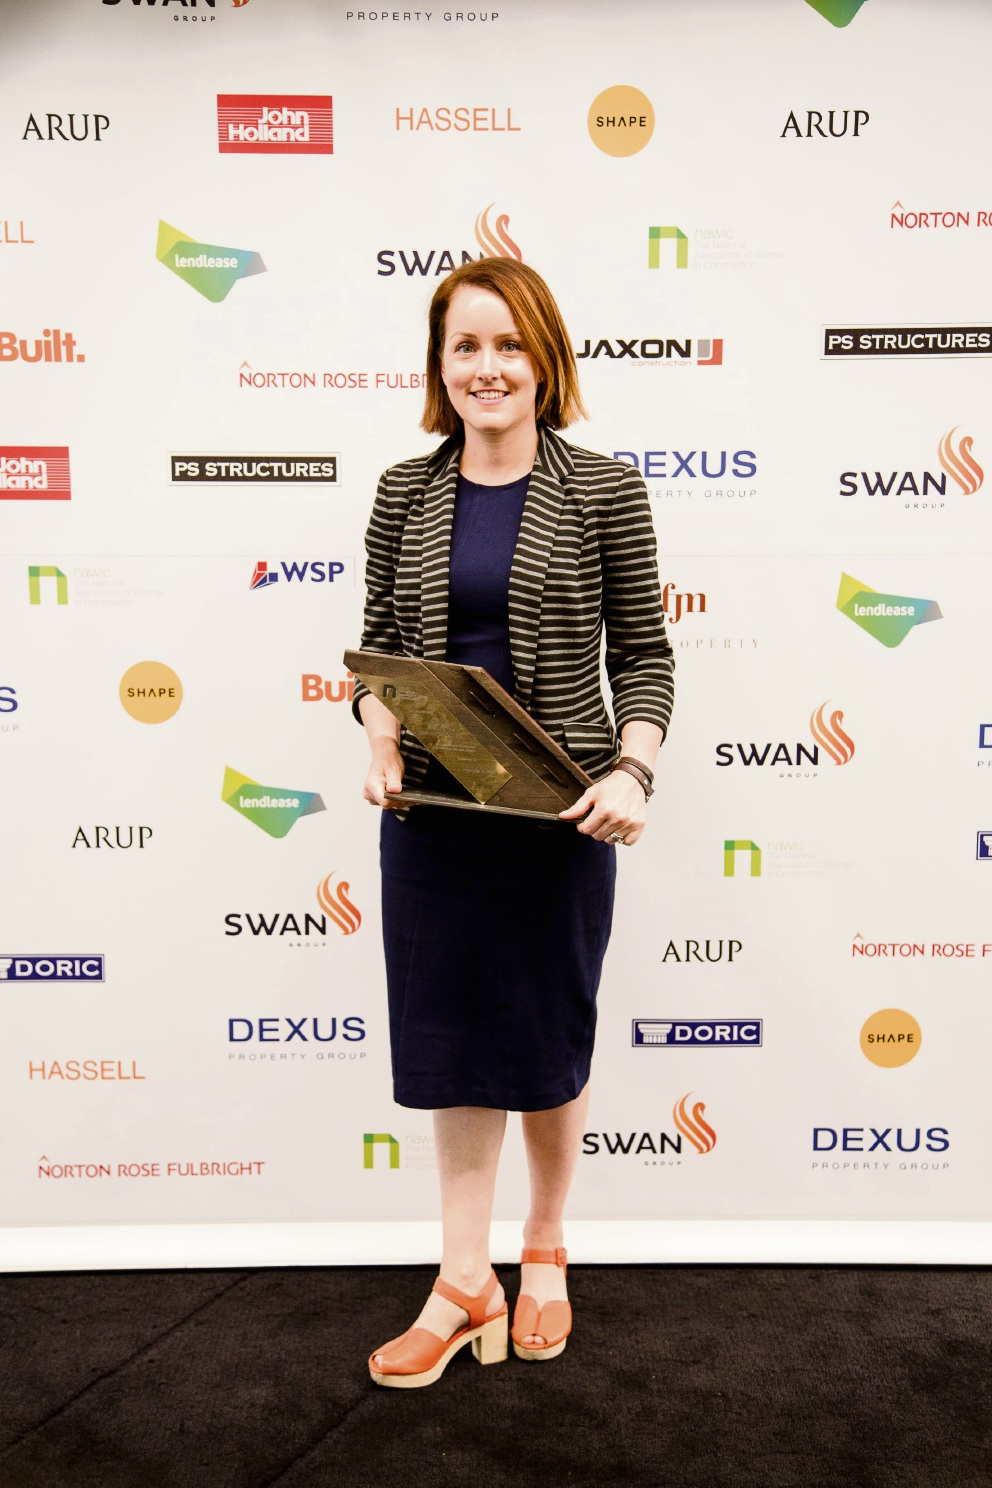 Best Busch: Bayswater resident recognised for landscape work at Fiona Stanley Hospital